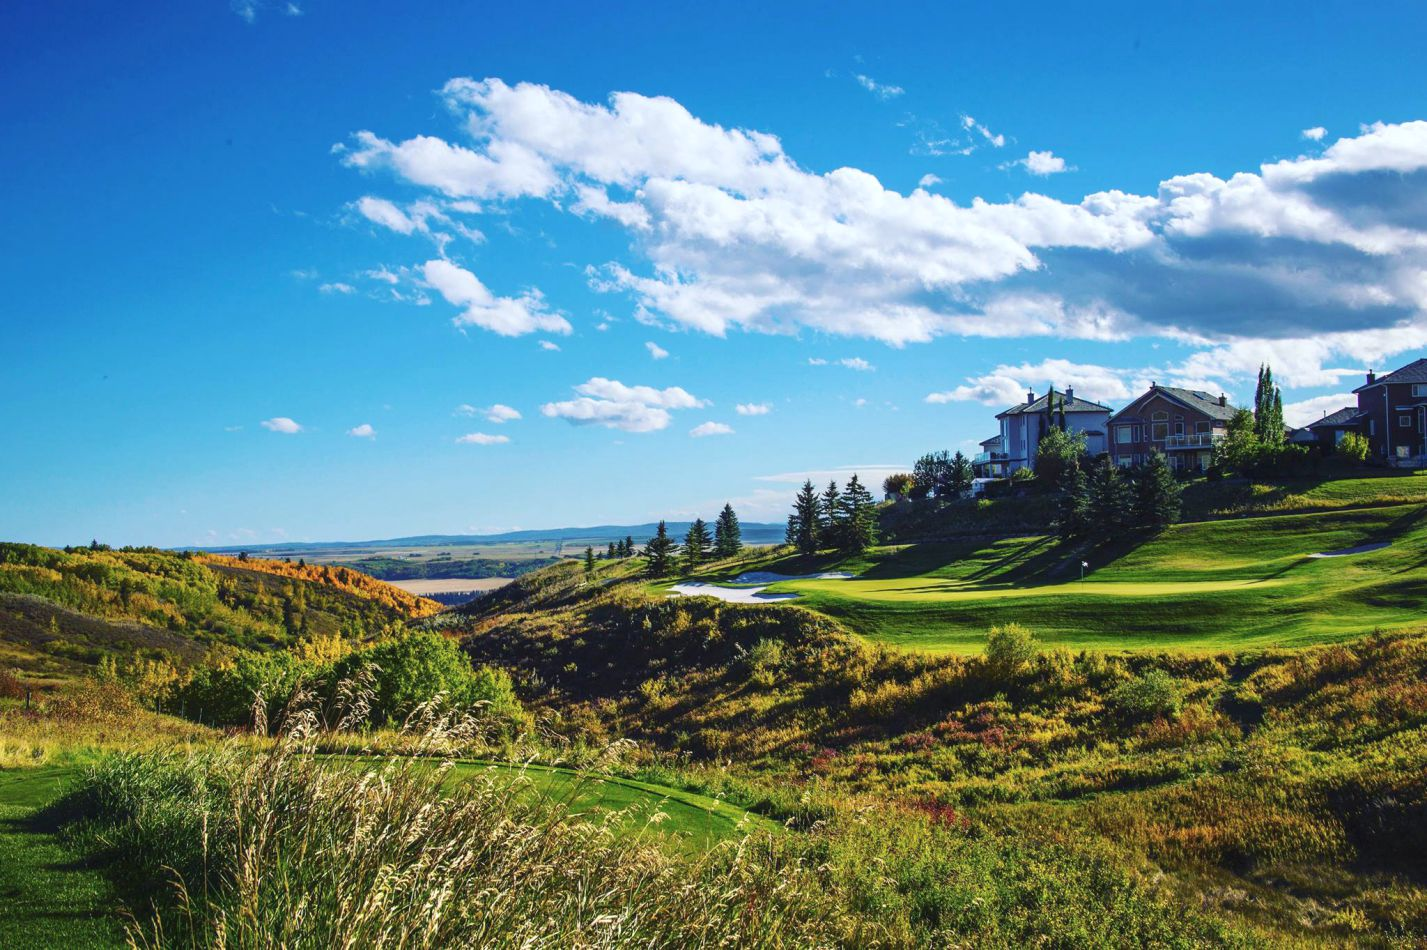 links-of-gleneagles-golf-club-23